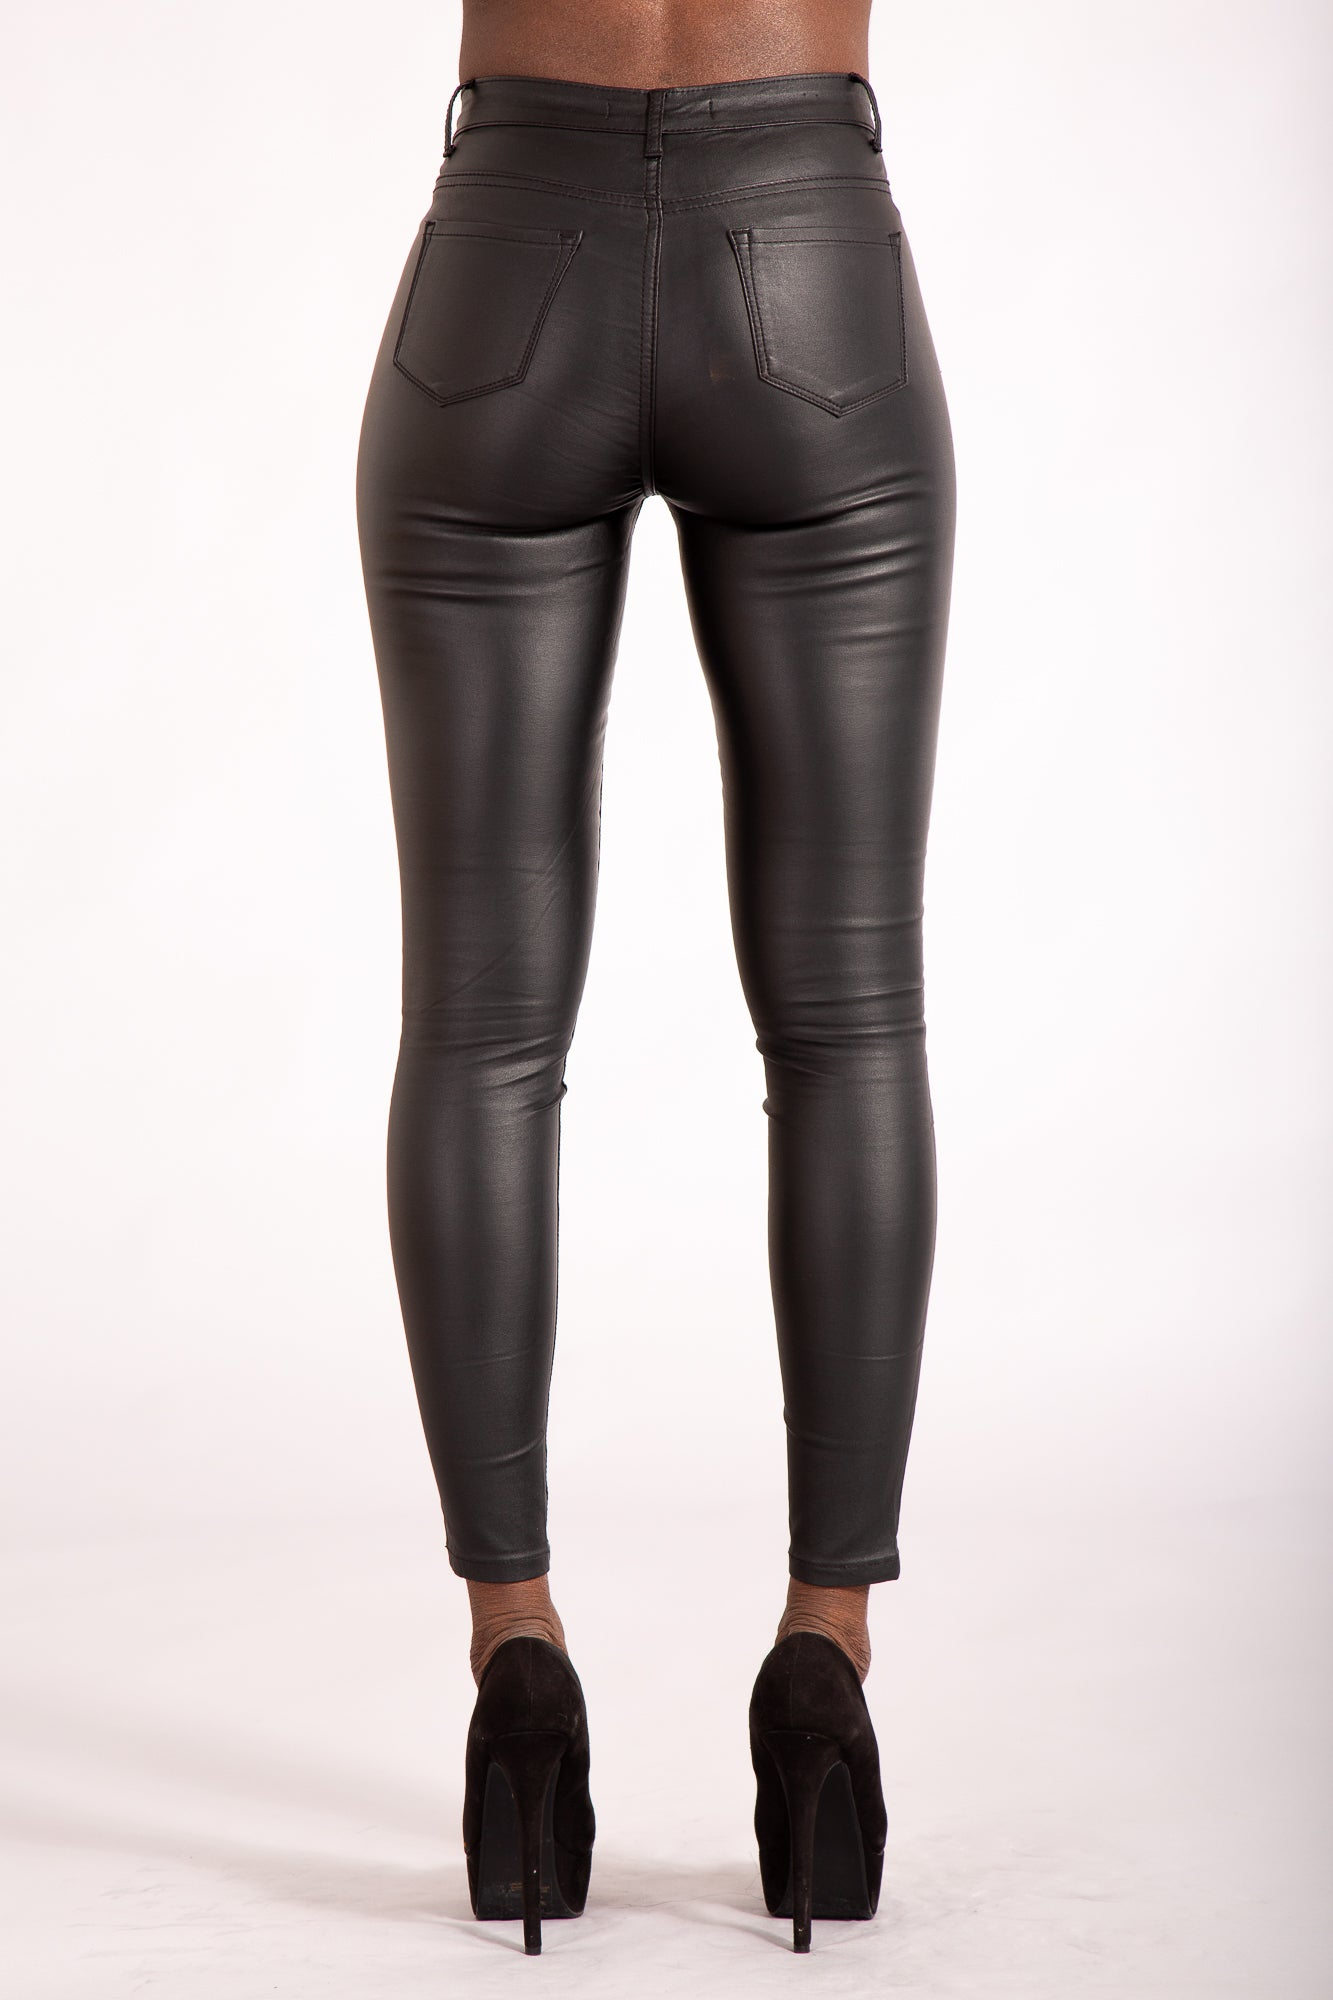 36f292b0af75fa Cute Kandy Black leather Look Leggings - Denim Crush